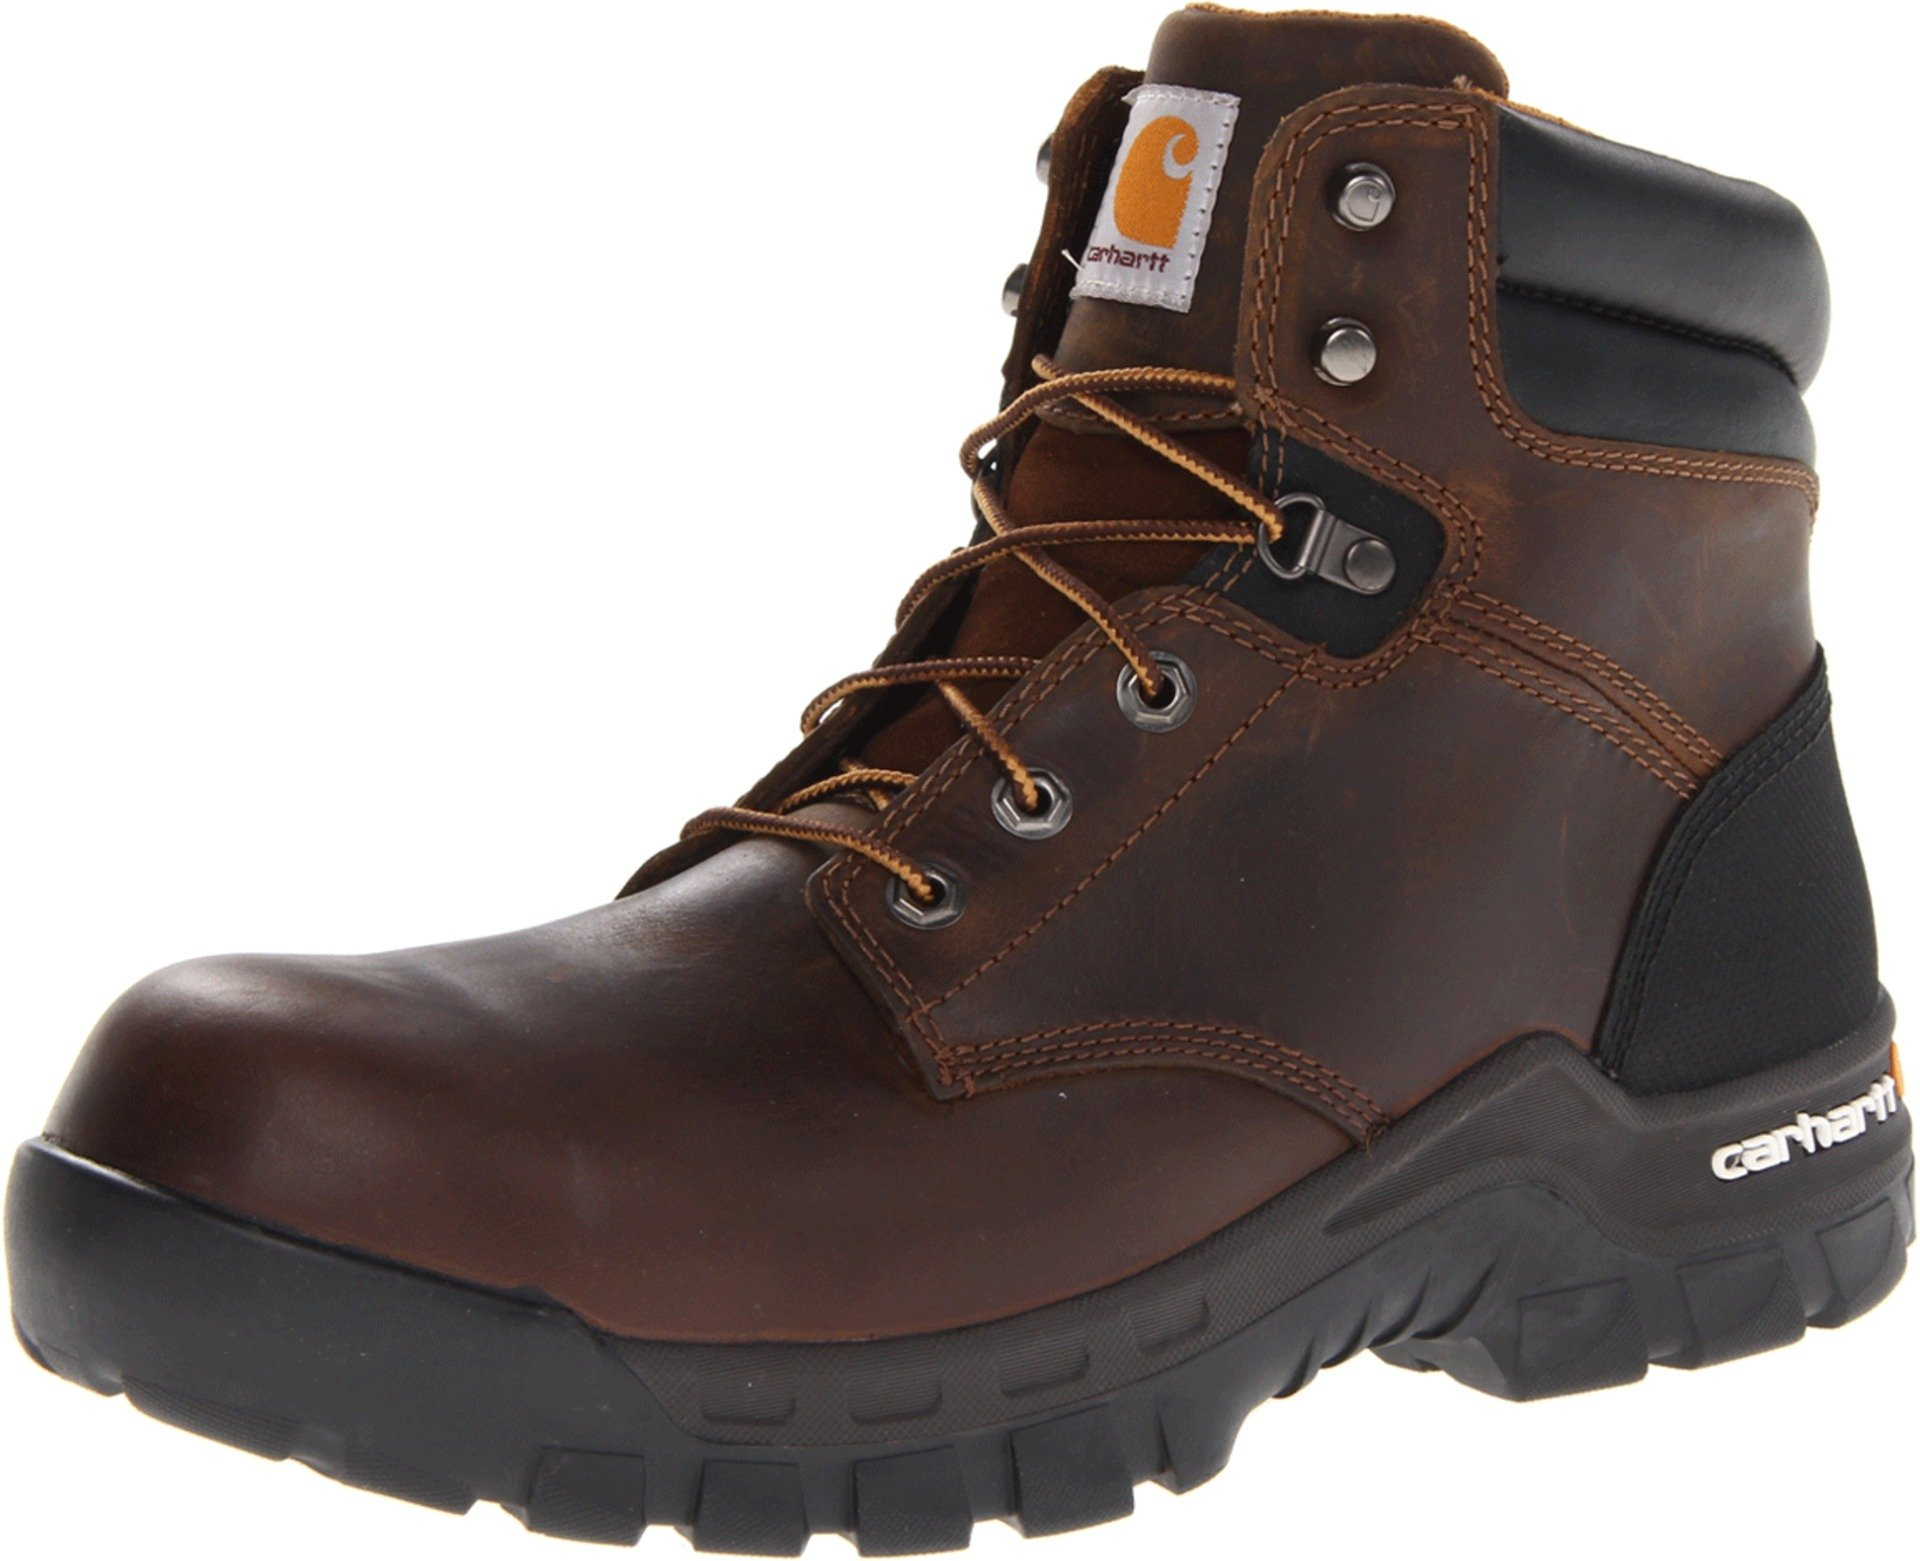 Carhartt Men's 6'' Rugged Flex Waterproof Breathable Composite Toe Leather Work Boot CMF6366,Brown Oil Tanned Leather,10.5 M US by Carhartt